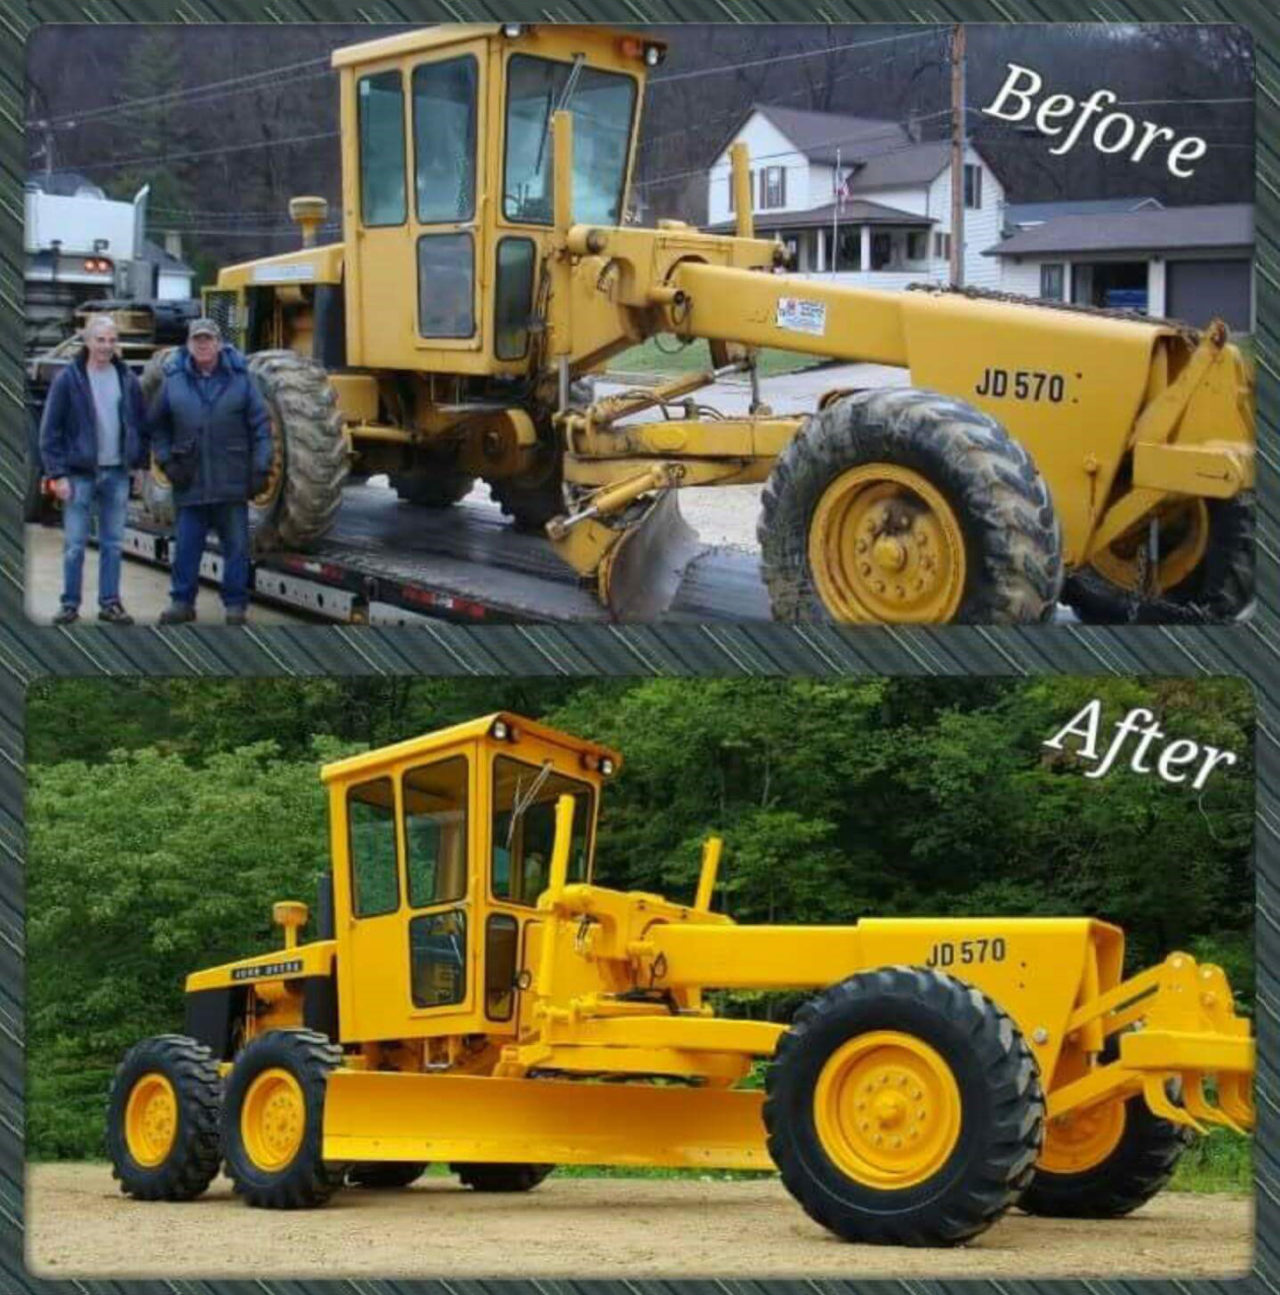 The 570 Motor Grader, before and after Don and Jerry restored it.